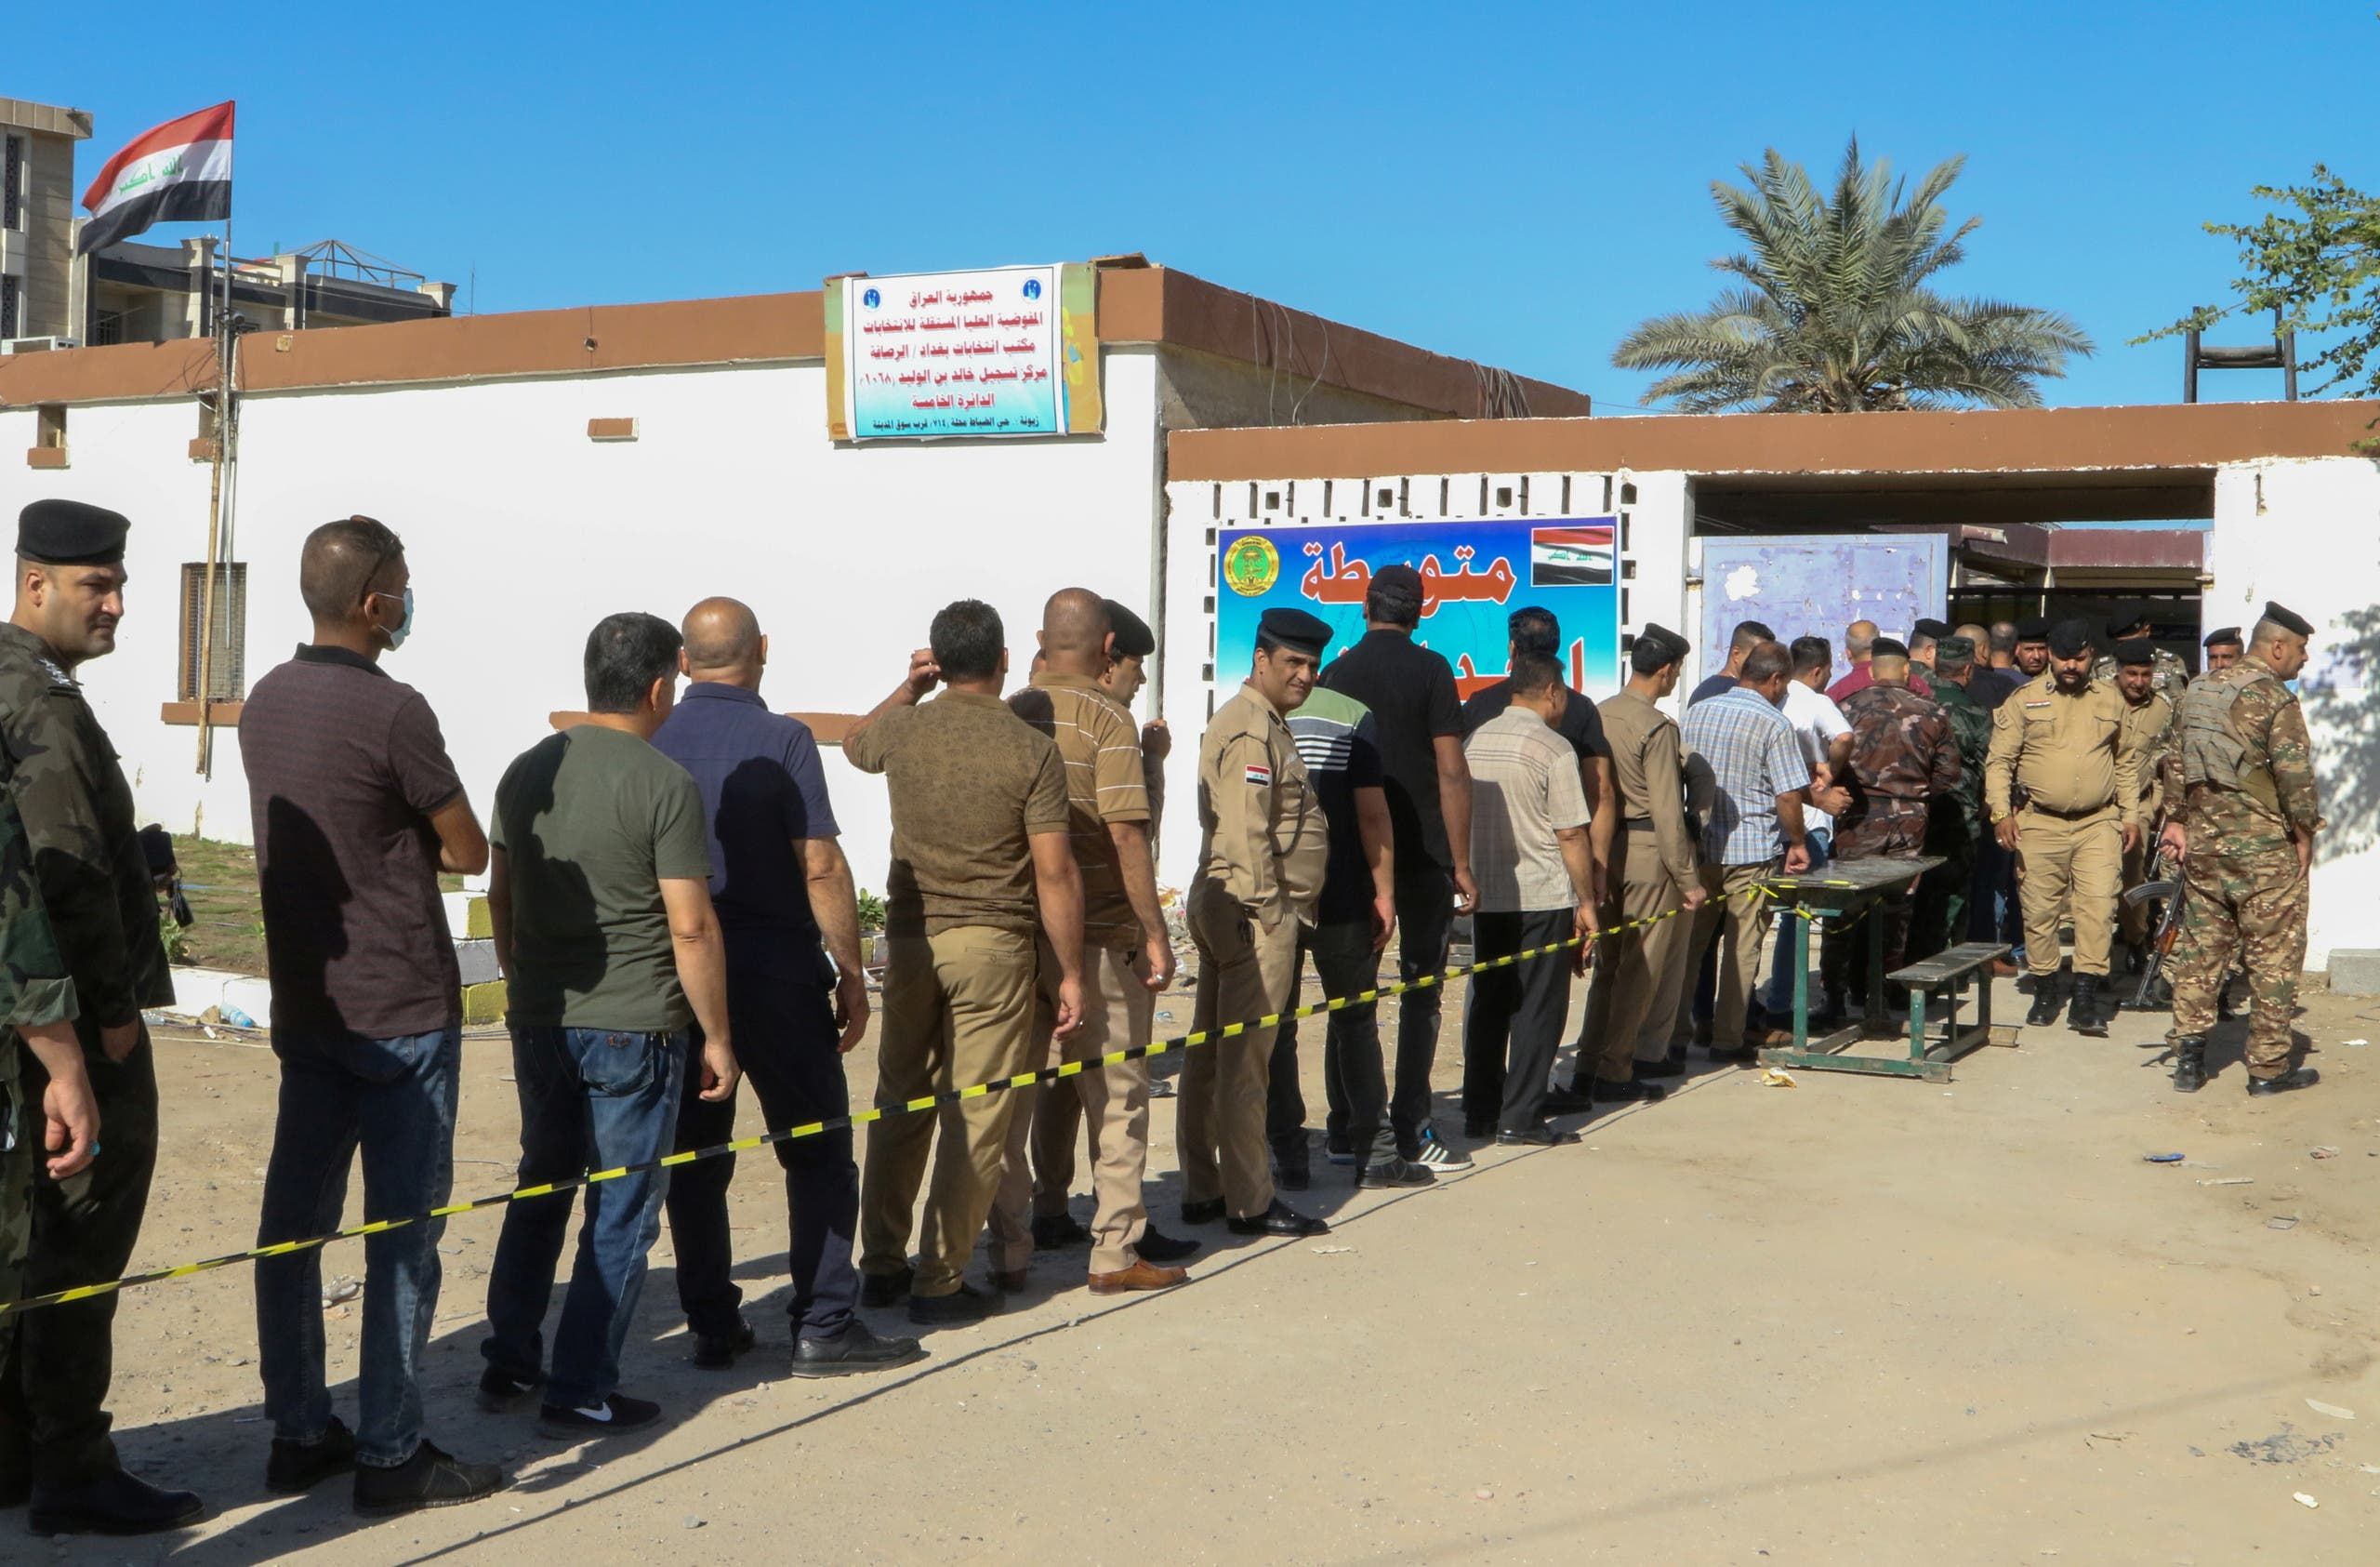 Members of Iraqi security forces line up outside a polling station waiting to cast their vote in a special process, two days ahead of Iraq's parliamentary elections, in Baghdad, Iraq October 8, 2021. (Reuters)